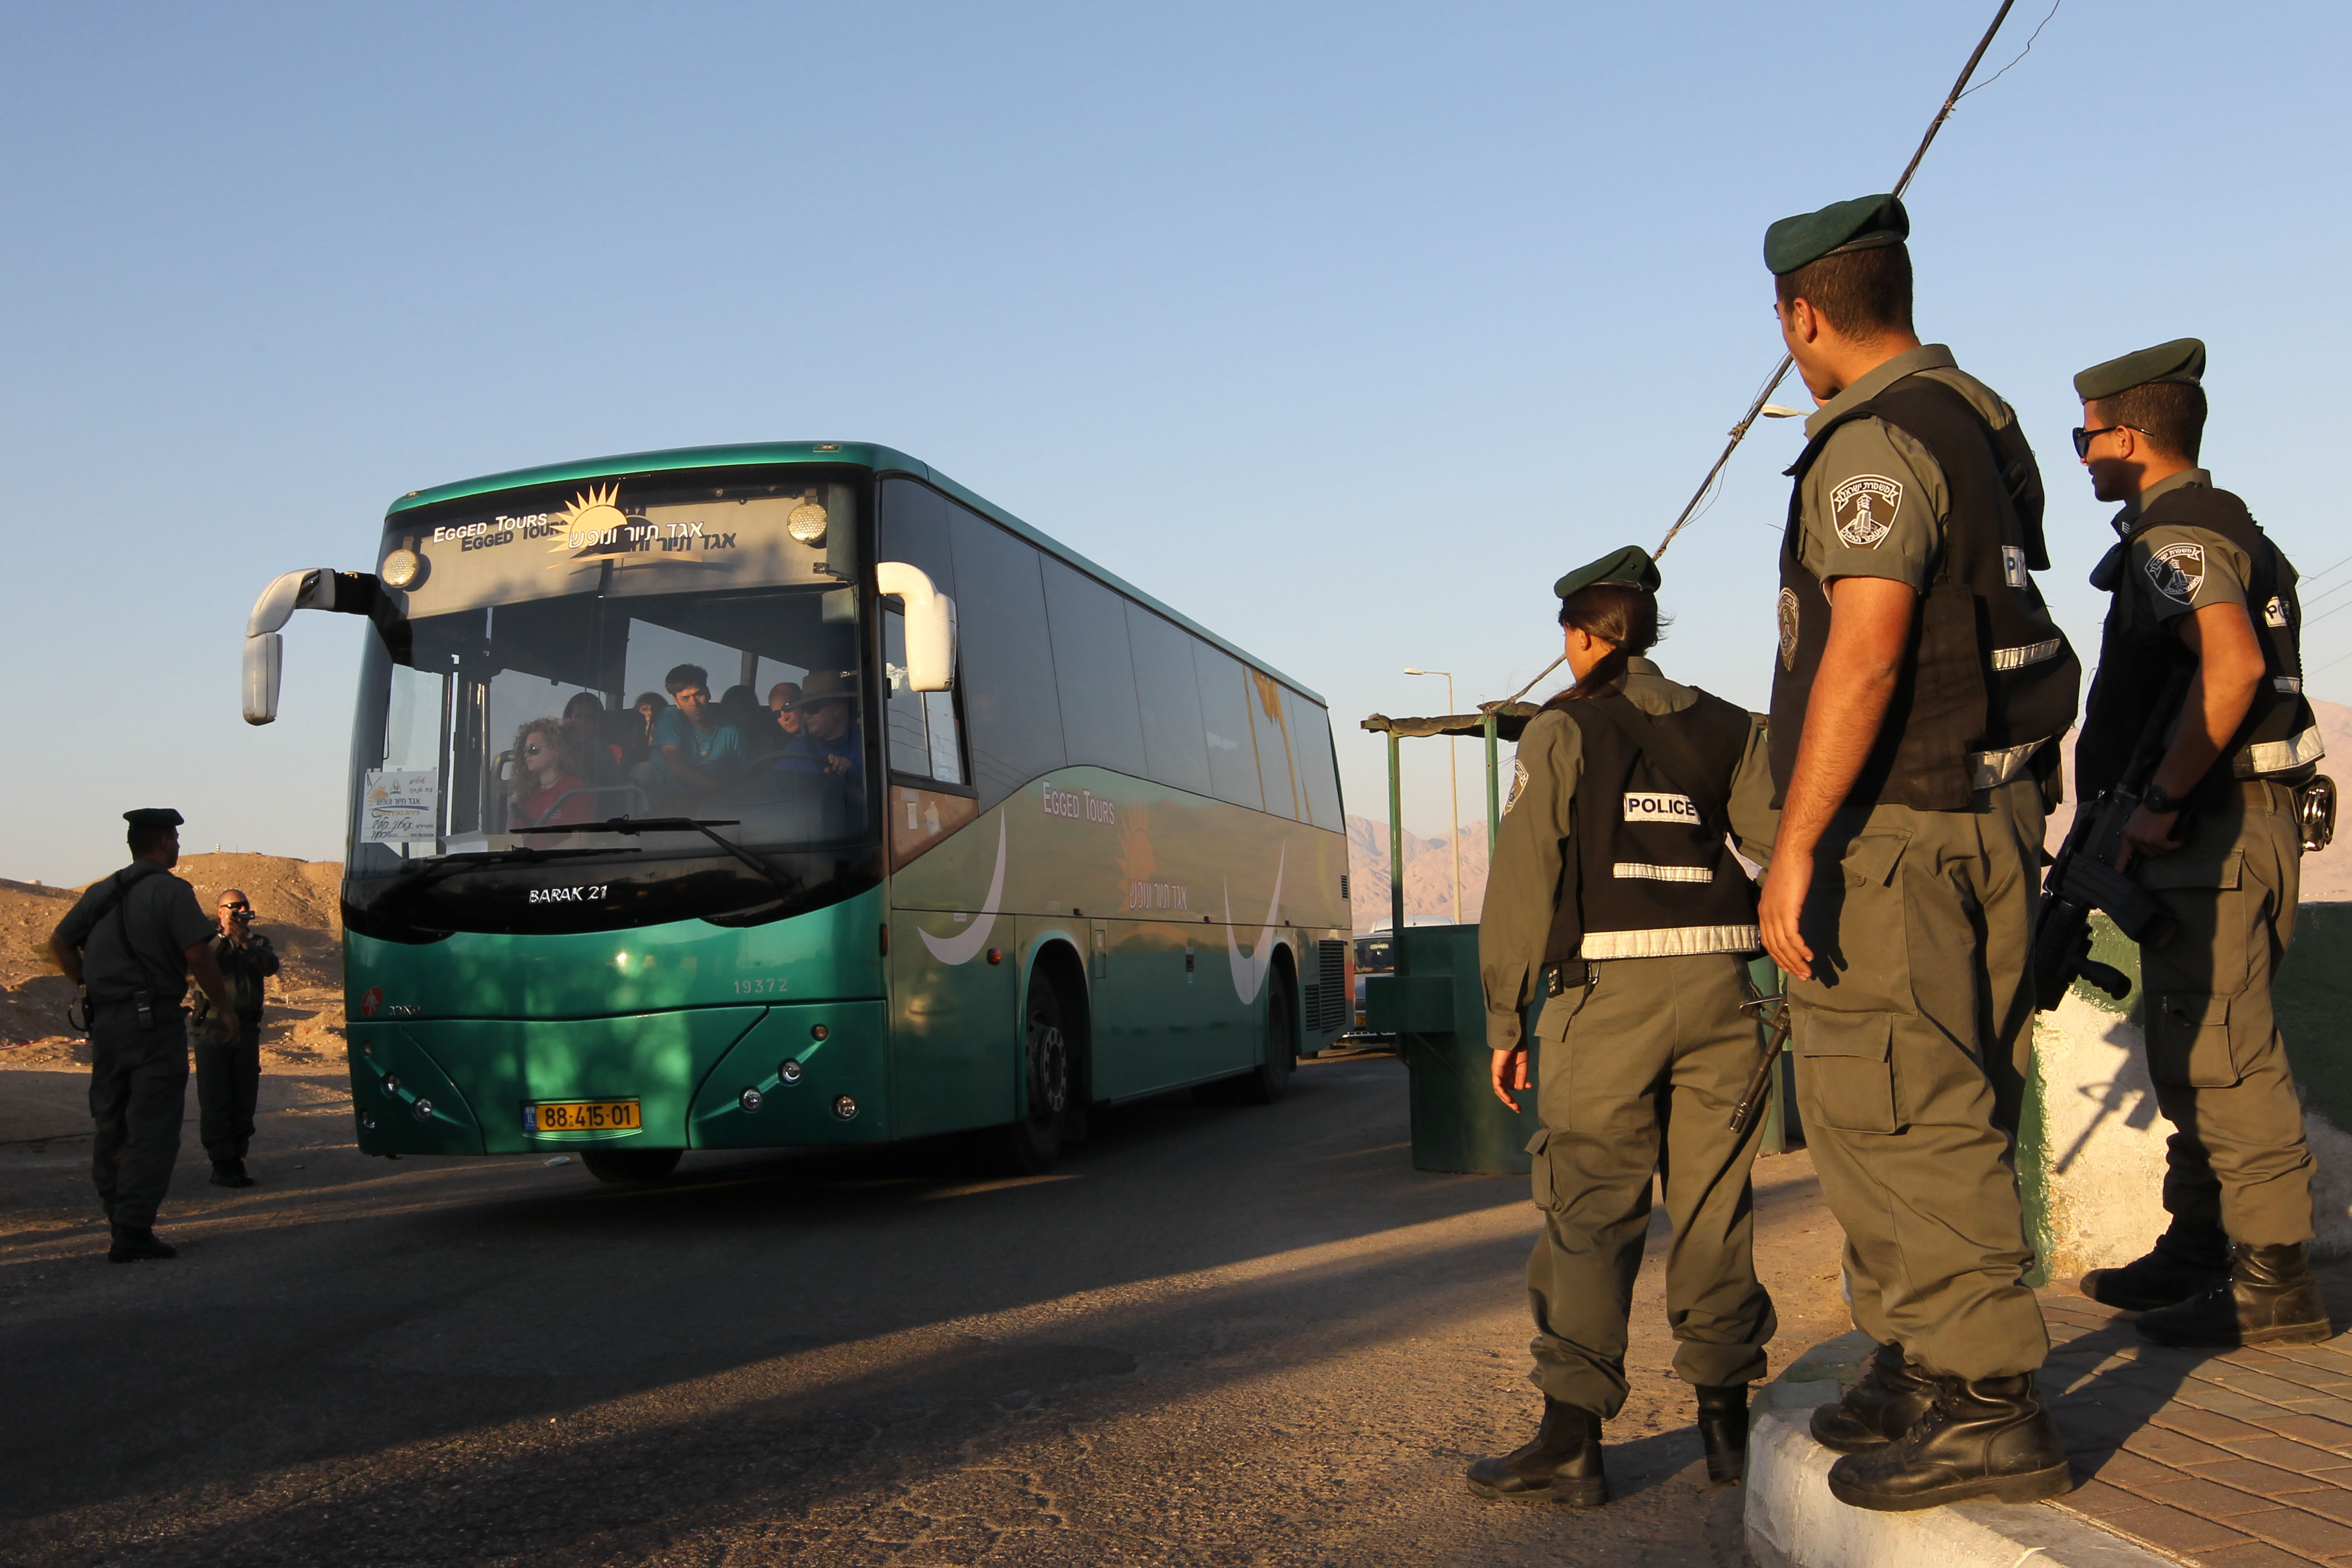 Bus from Sinai to Eilat